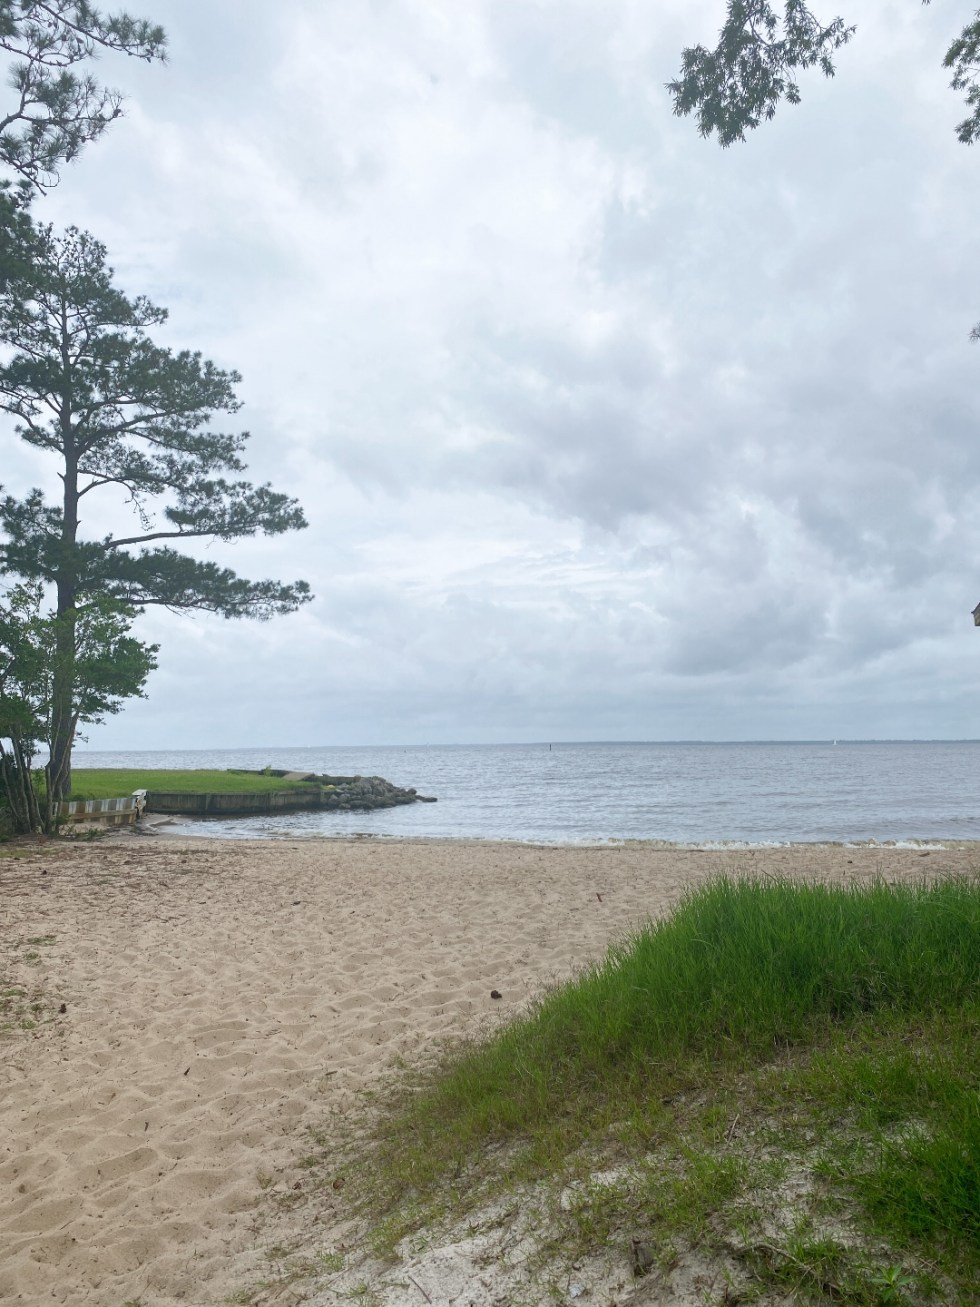 What to Do in Oriental, NC - I'm Fixin' To - @imfixintoblog | Things to do in Oriental NC by popular NC travel blog, I'm Fixin' To: image of a sandy beach with beach grass growing on some sand dunes.